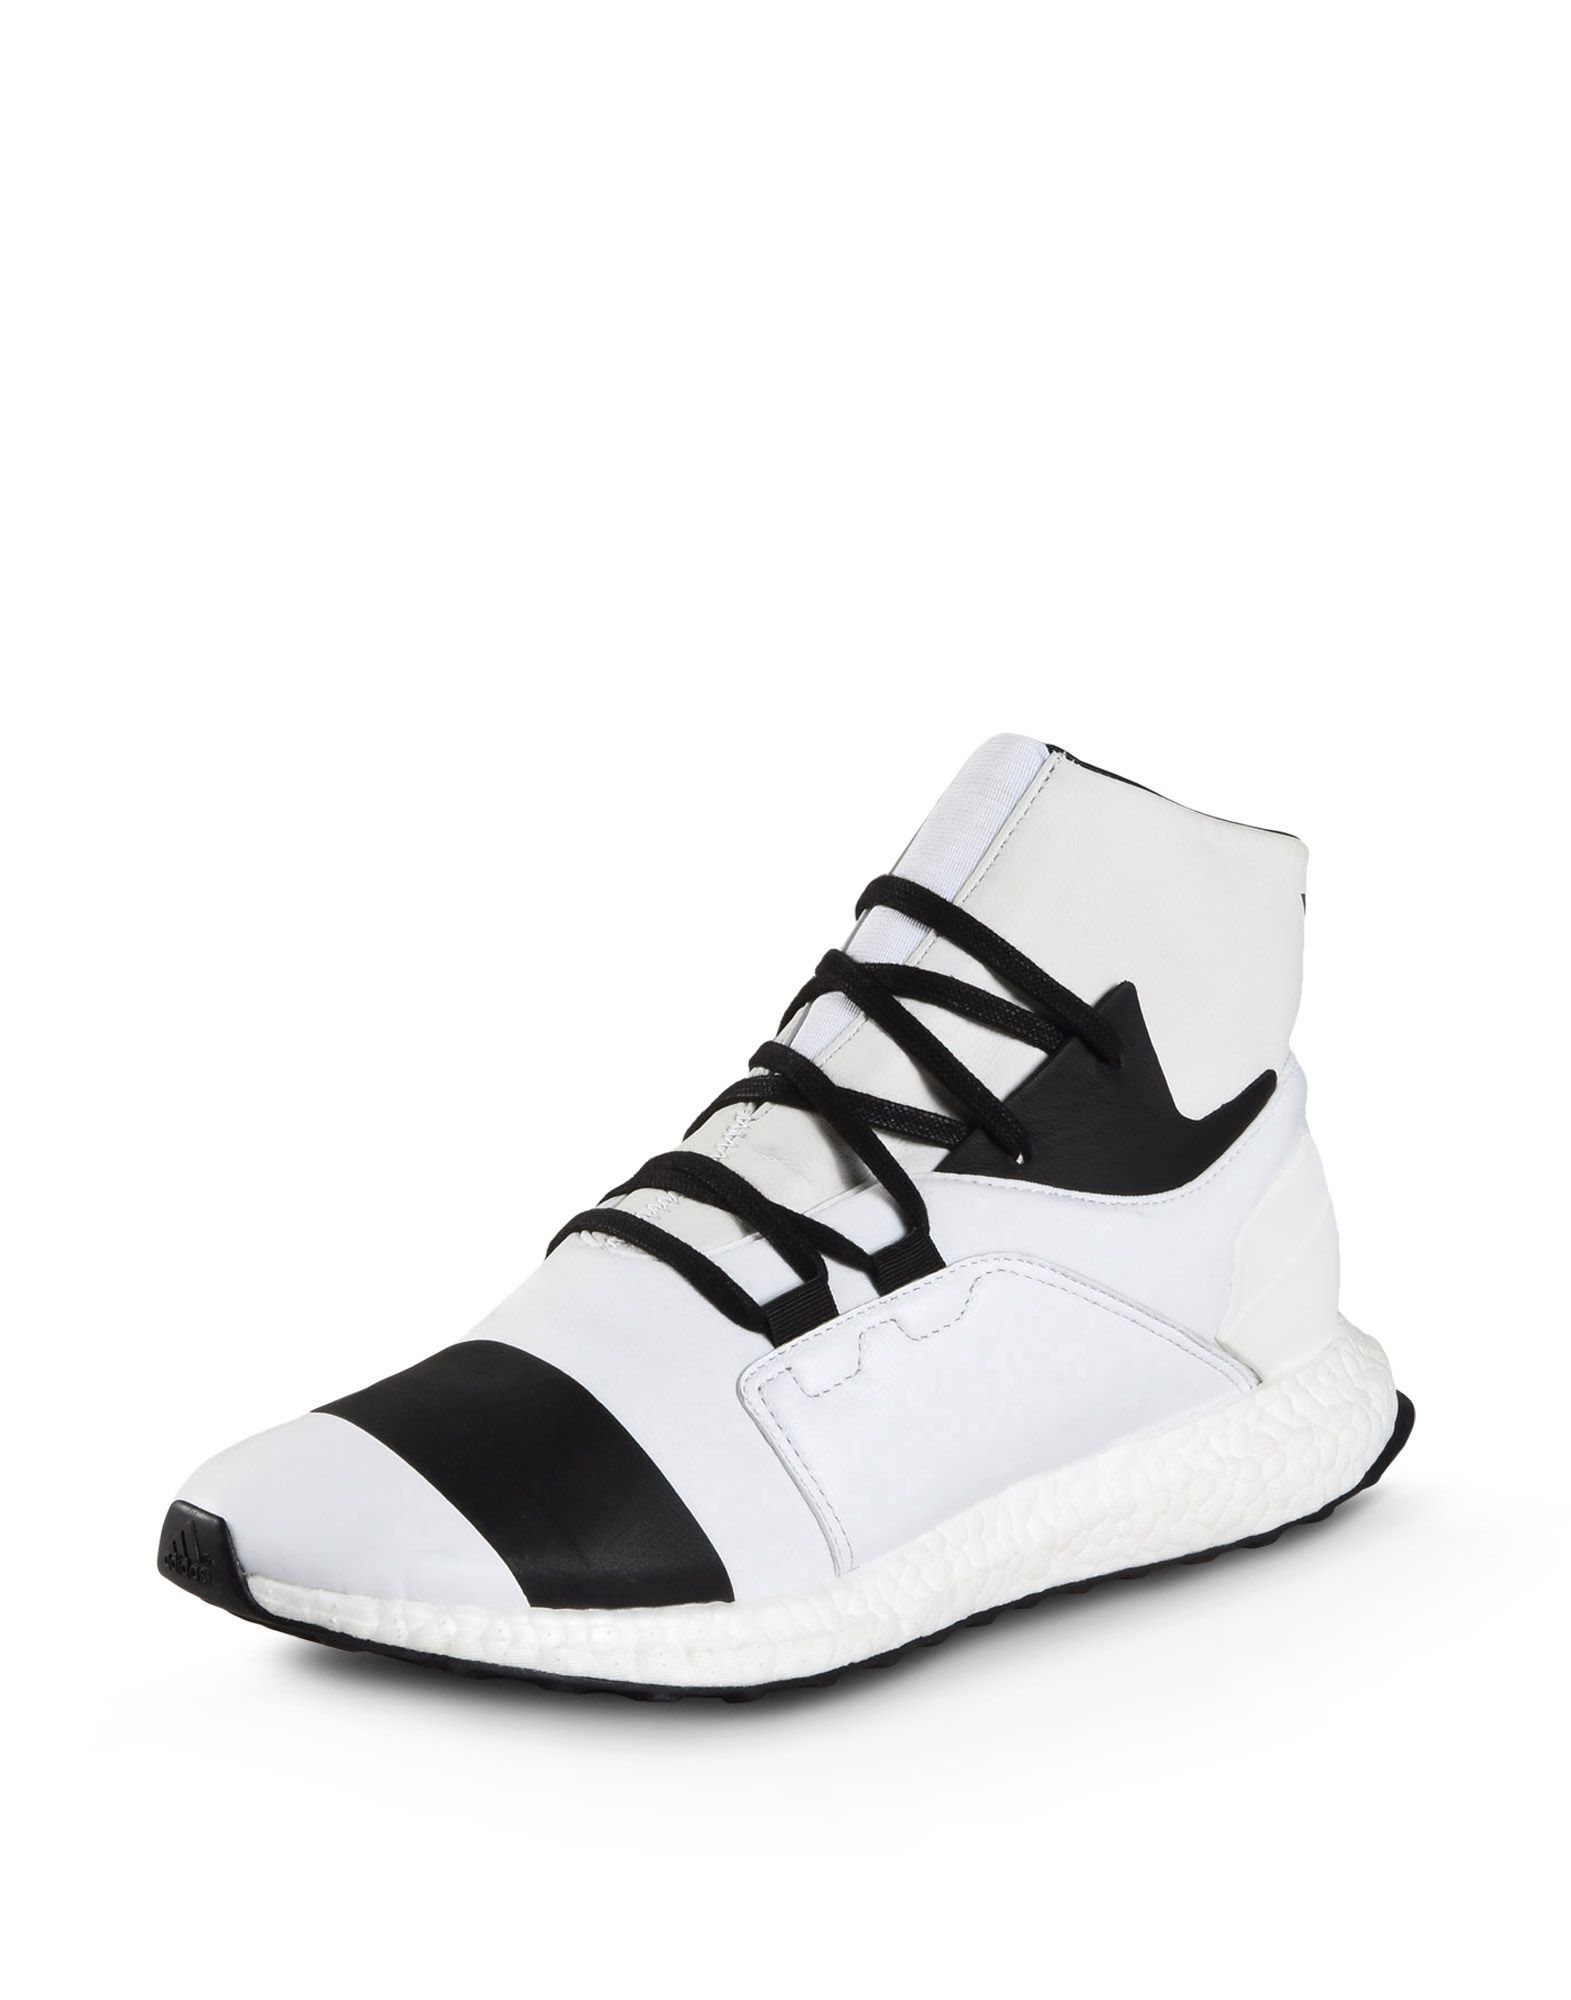 2968307bf Y-3 KOZOKO HIGH Shoes man Y-3 adidas